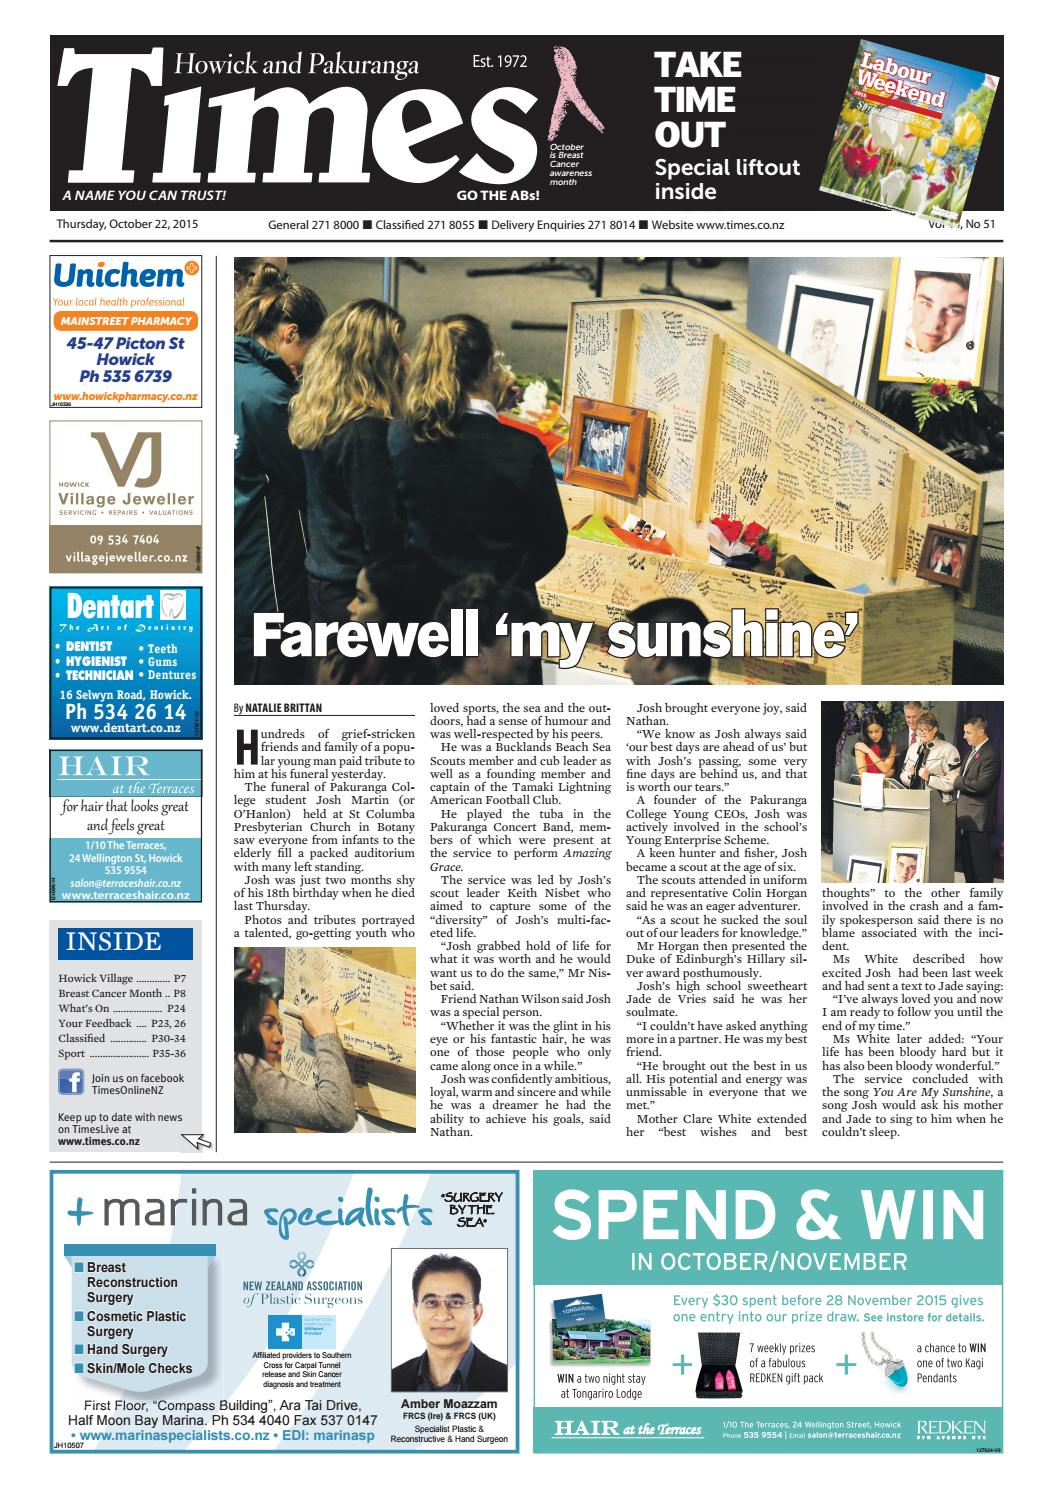 Howick and pakuranga times oct 22 2015 by Times Media - issuu